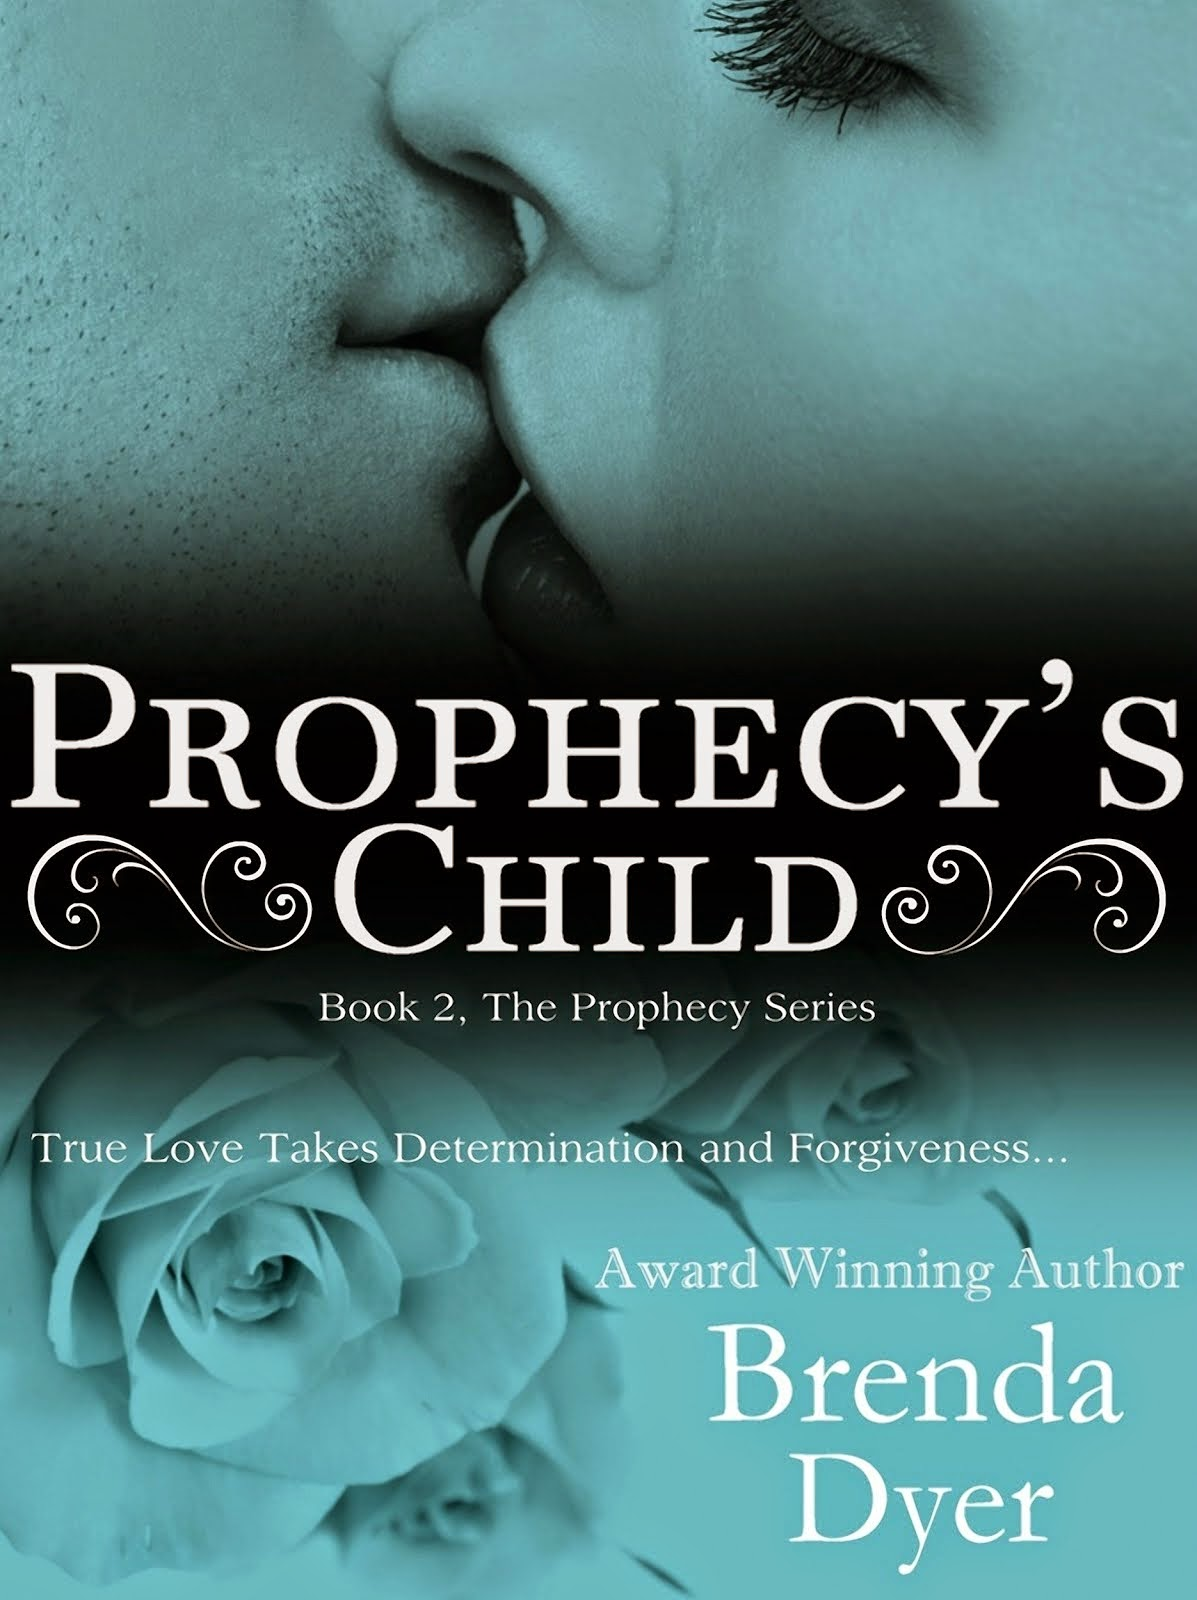 Prophecy's Child, chapter 1